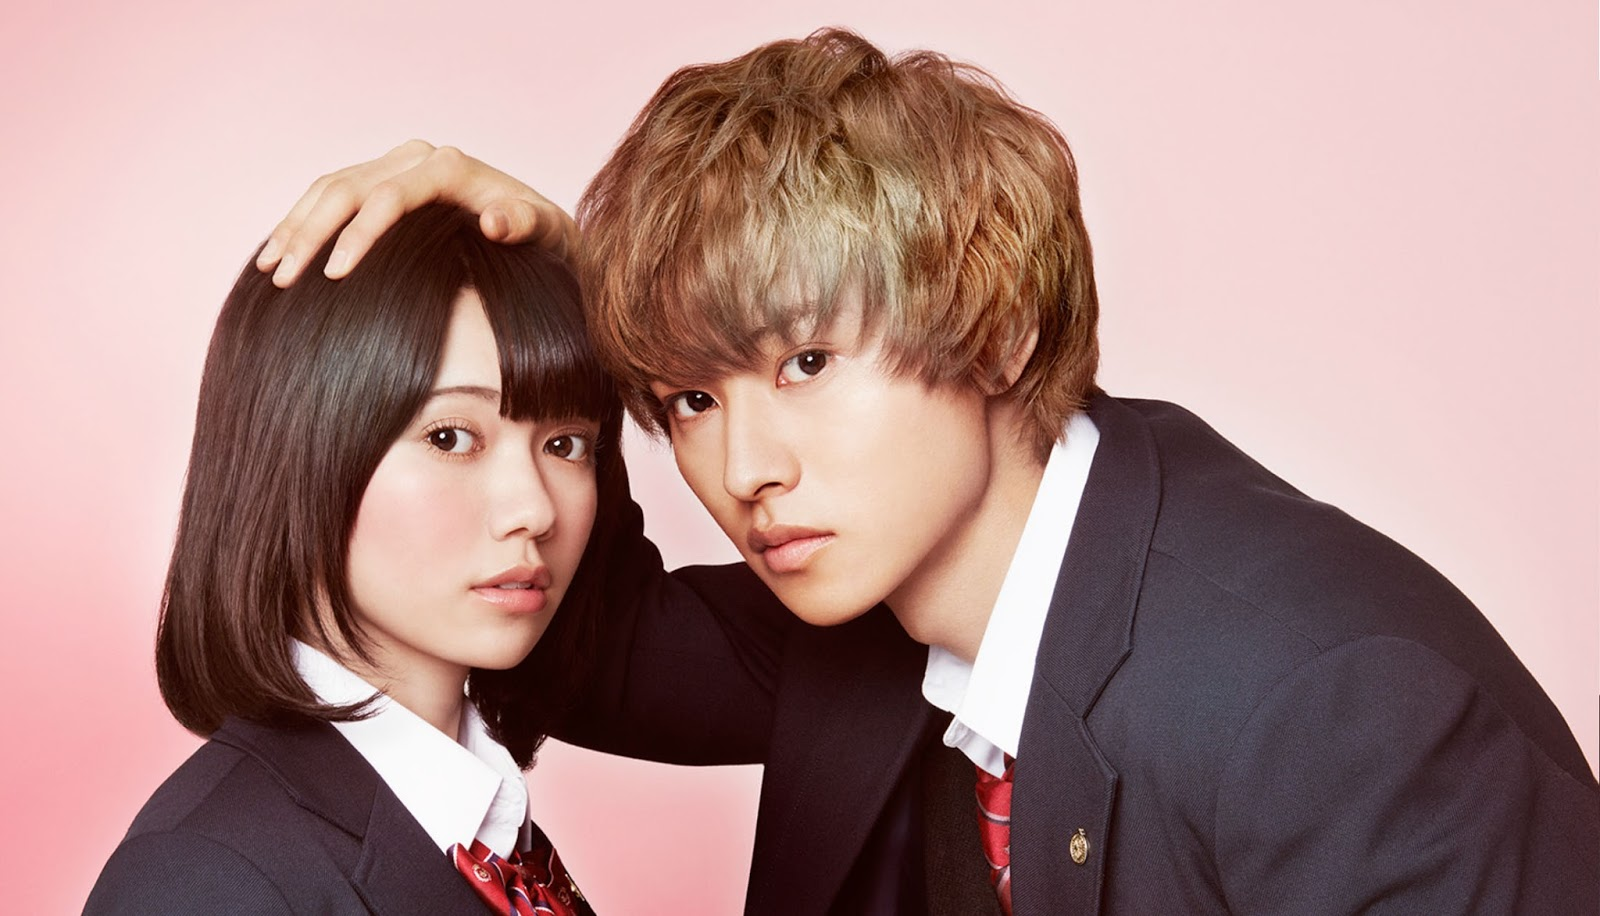 LIST OF MUST WATCH HIGH SCHOOL JAPANESE DORAMA